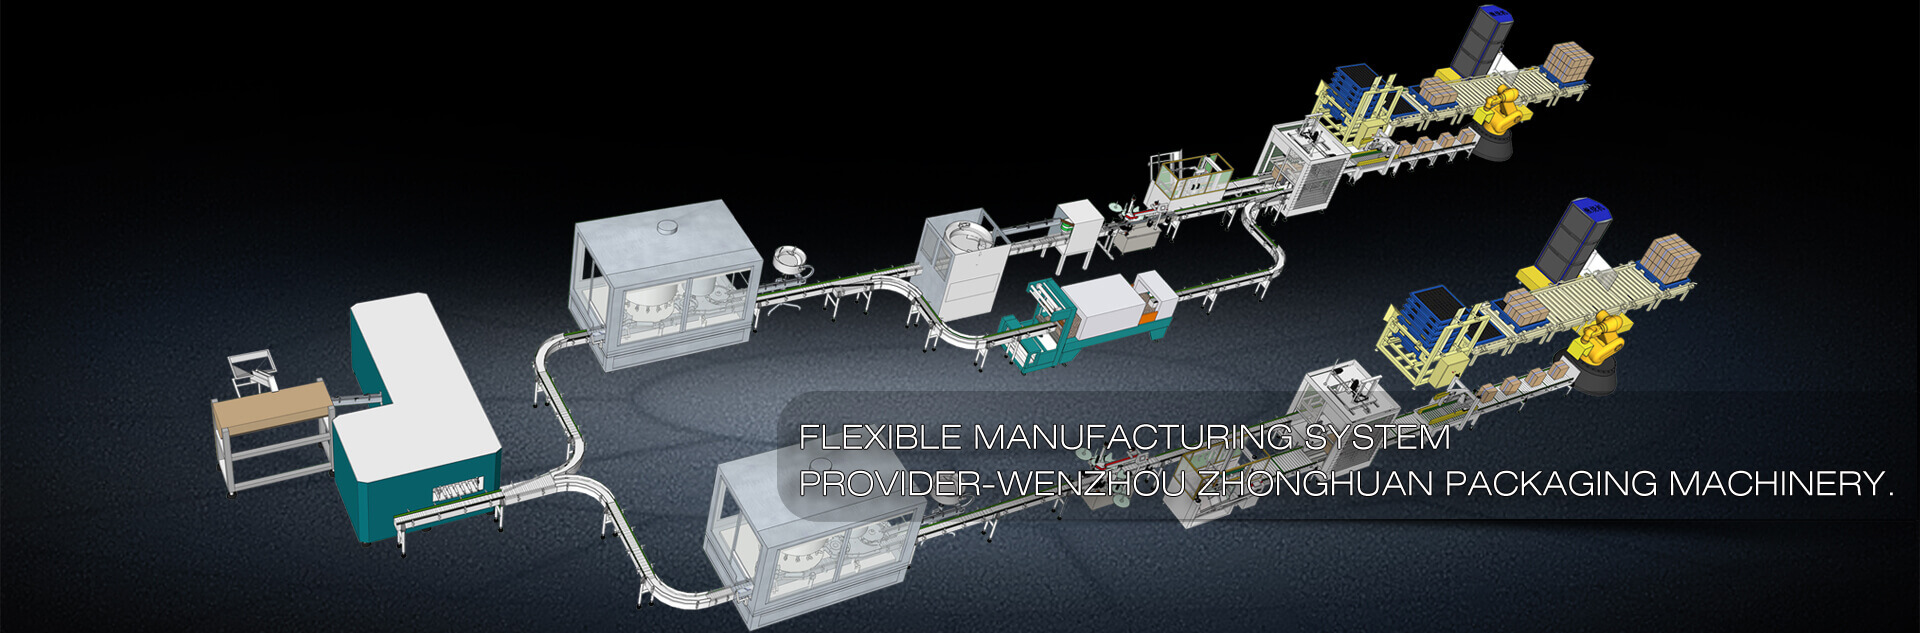 Wenzhou Zhonghuan Packaging Machinery Co., Ltd